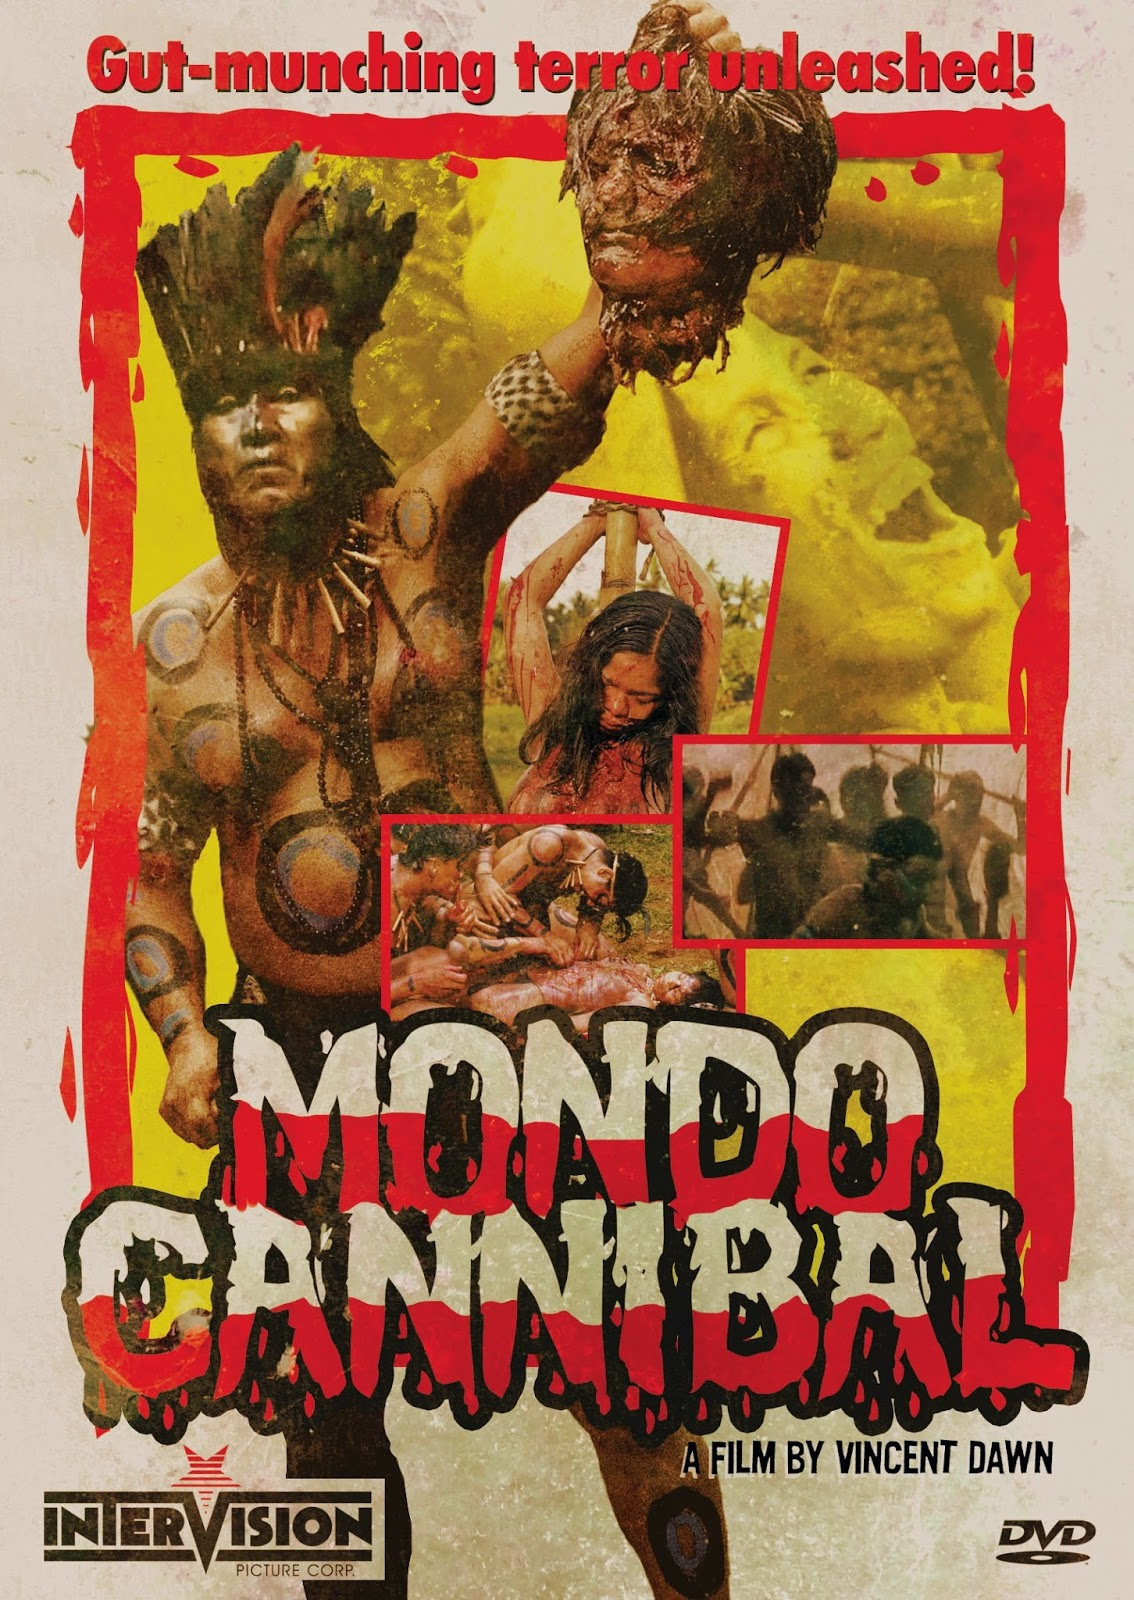 http://www.severin-films.com/2014/09/25/mondo-cannibal/